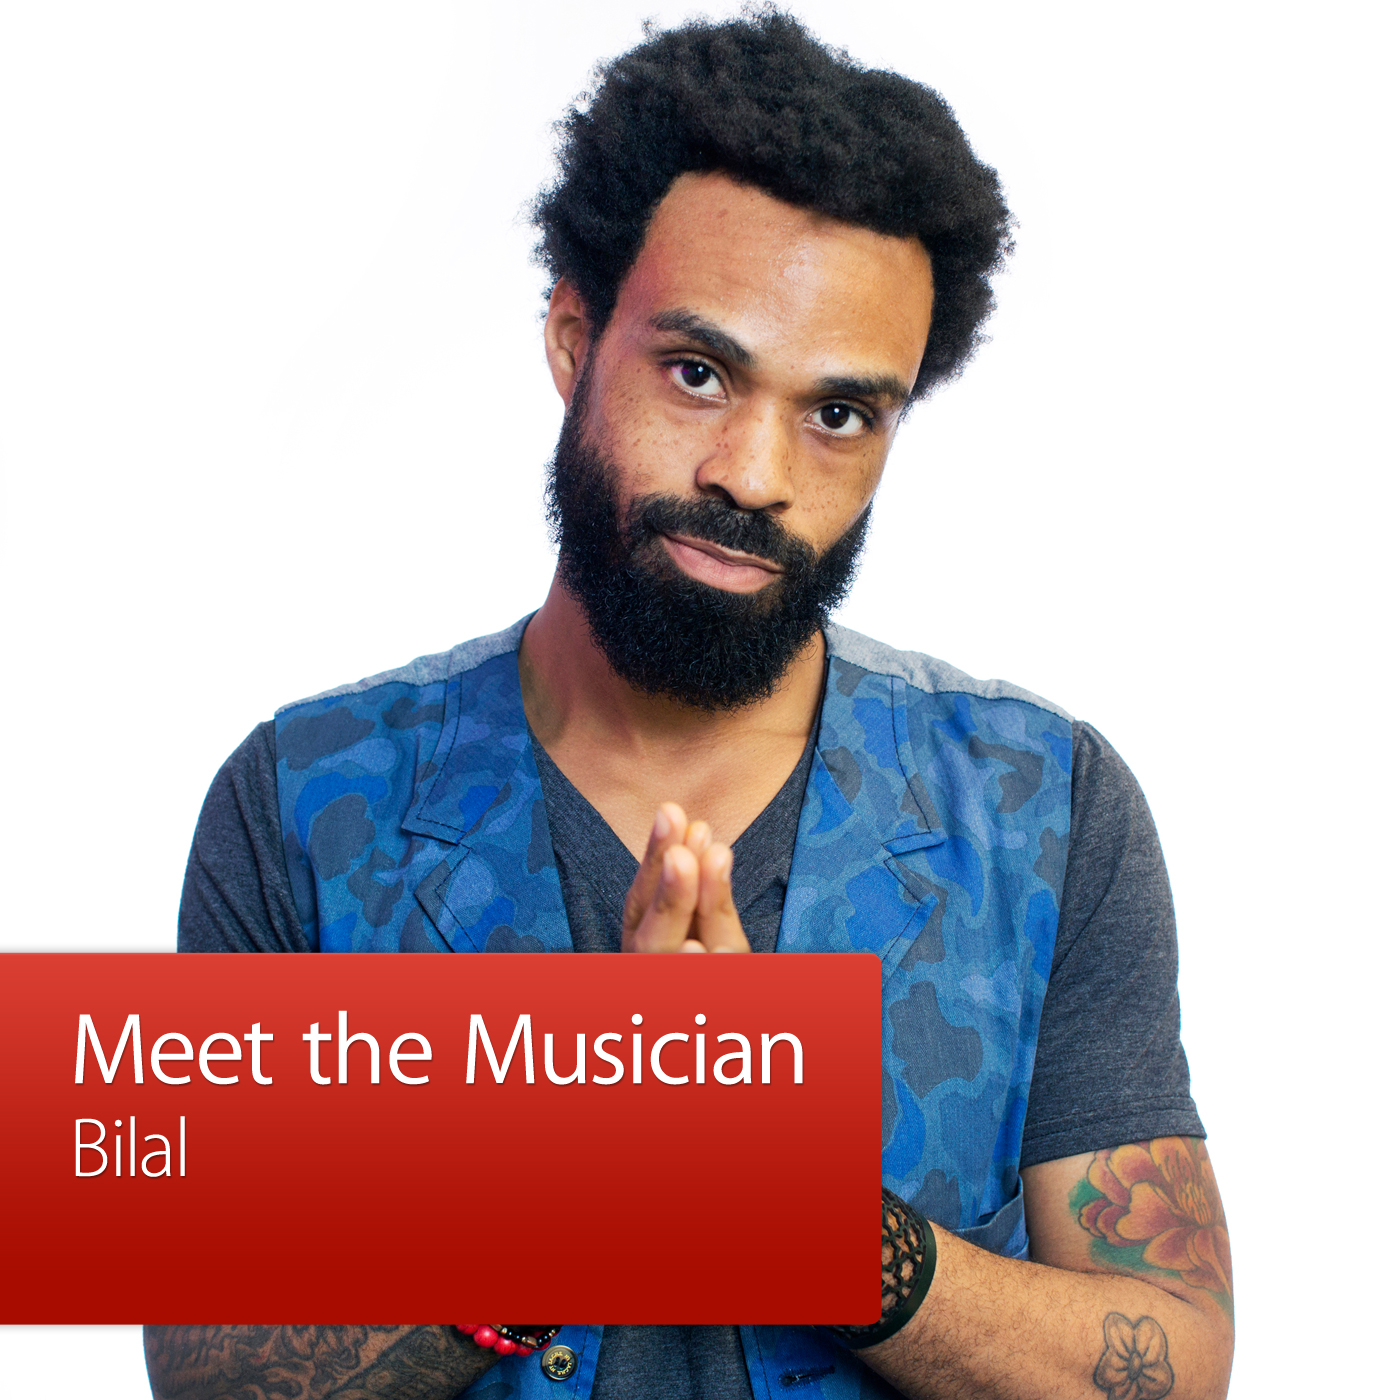 Bilal: Meet the Musician